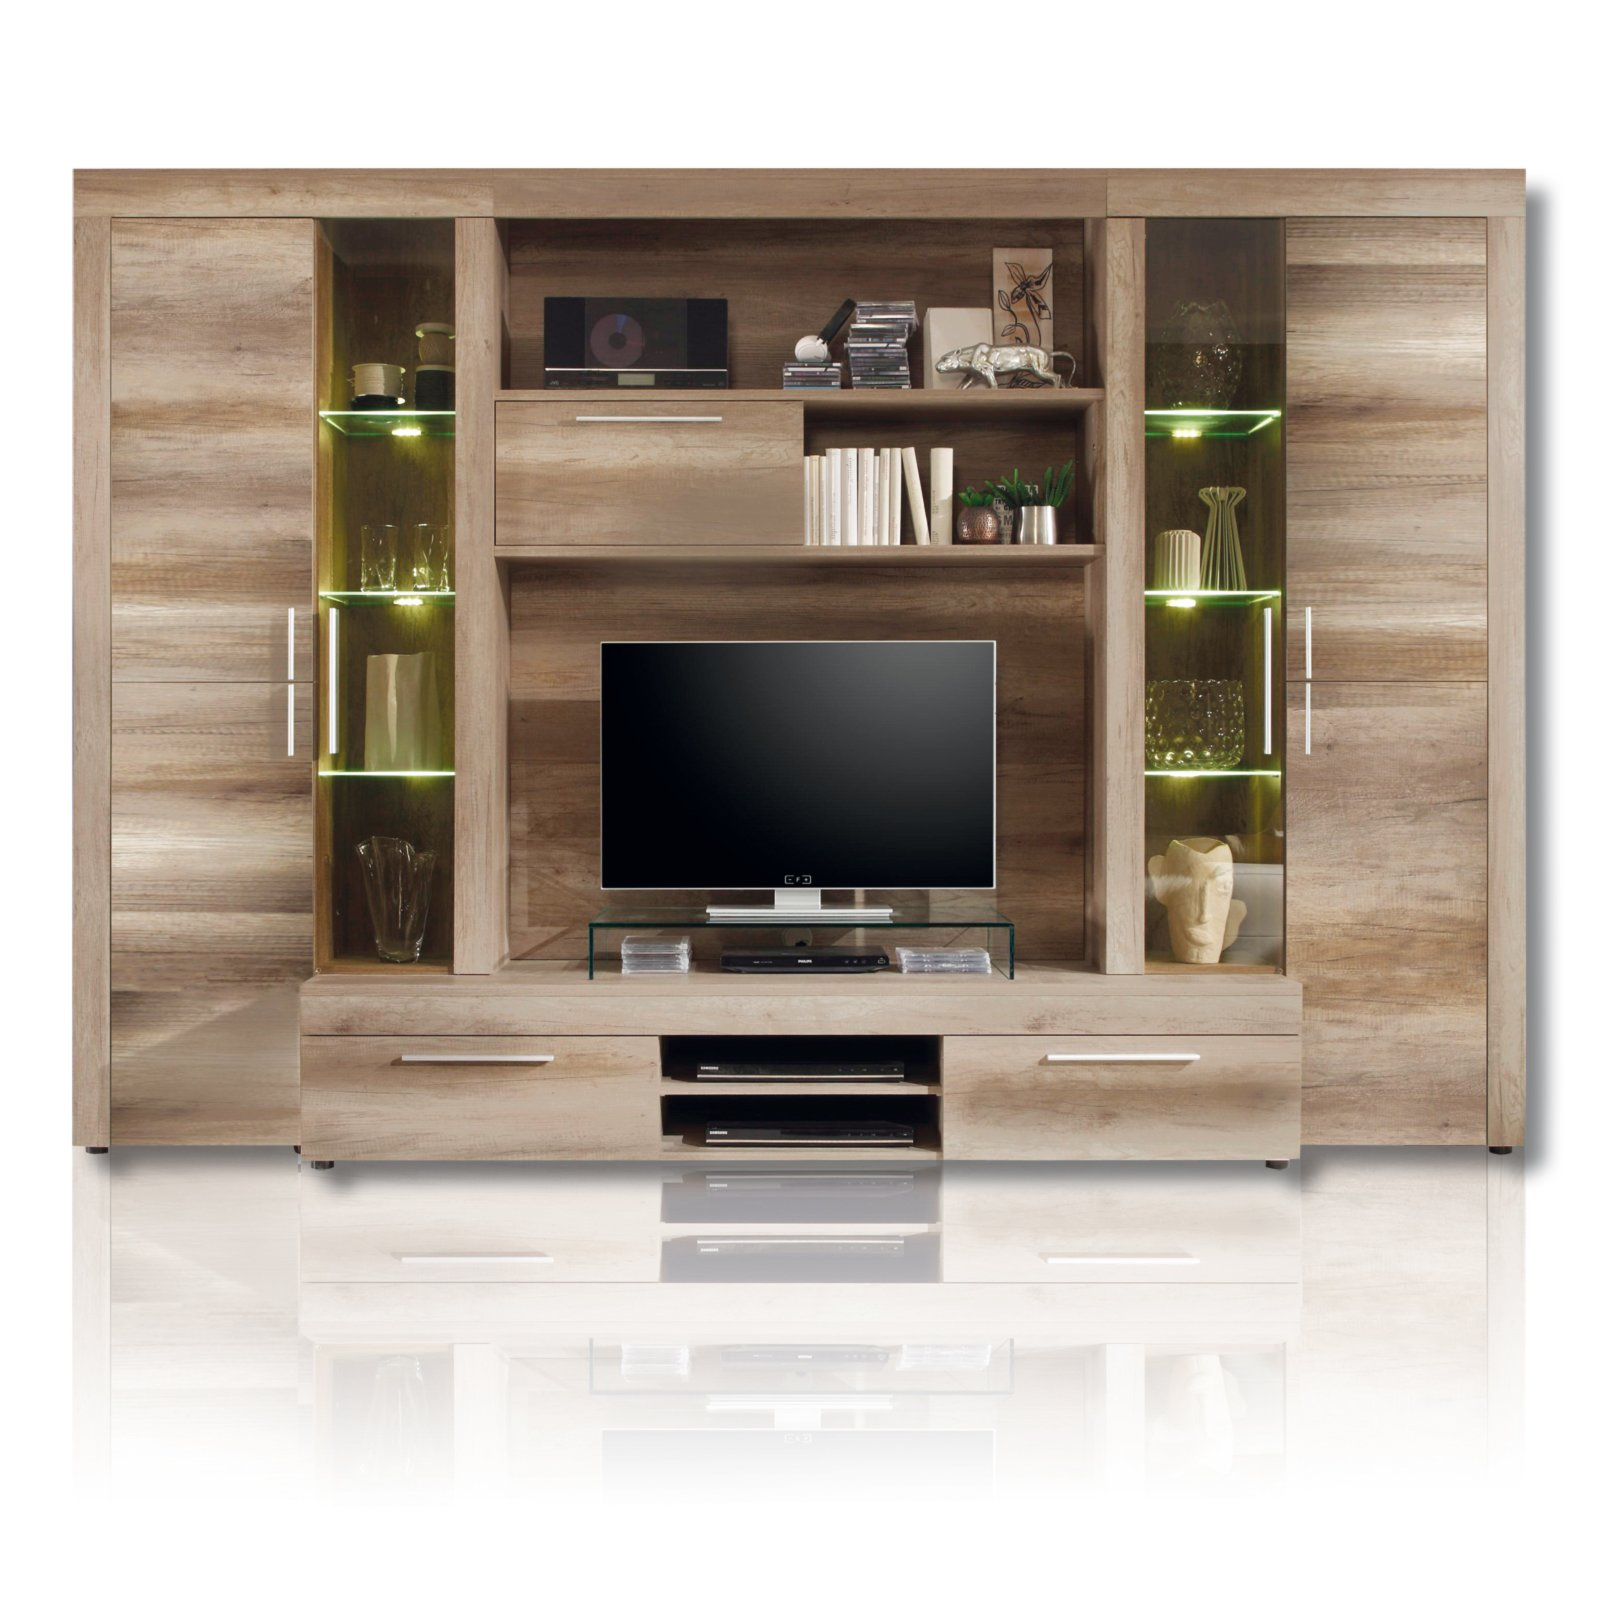 wohnwand boom kompakt led beleuchtung eiche wohnw nde wohnw nde m bel roller m belhaus. Black Bedroom Furniture Sets. Home Design Ideas